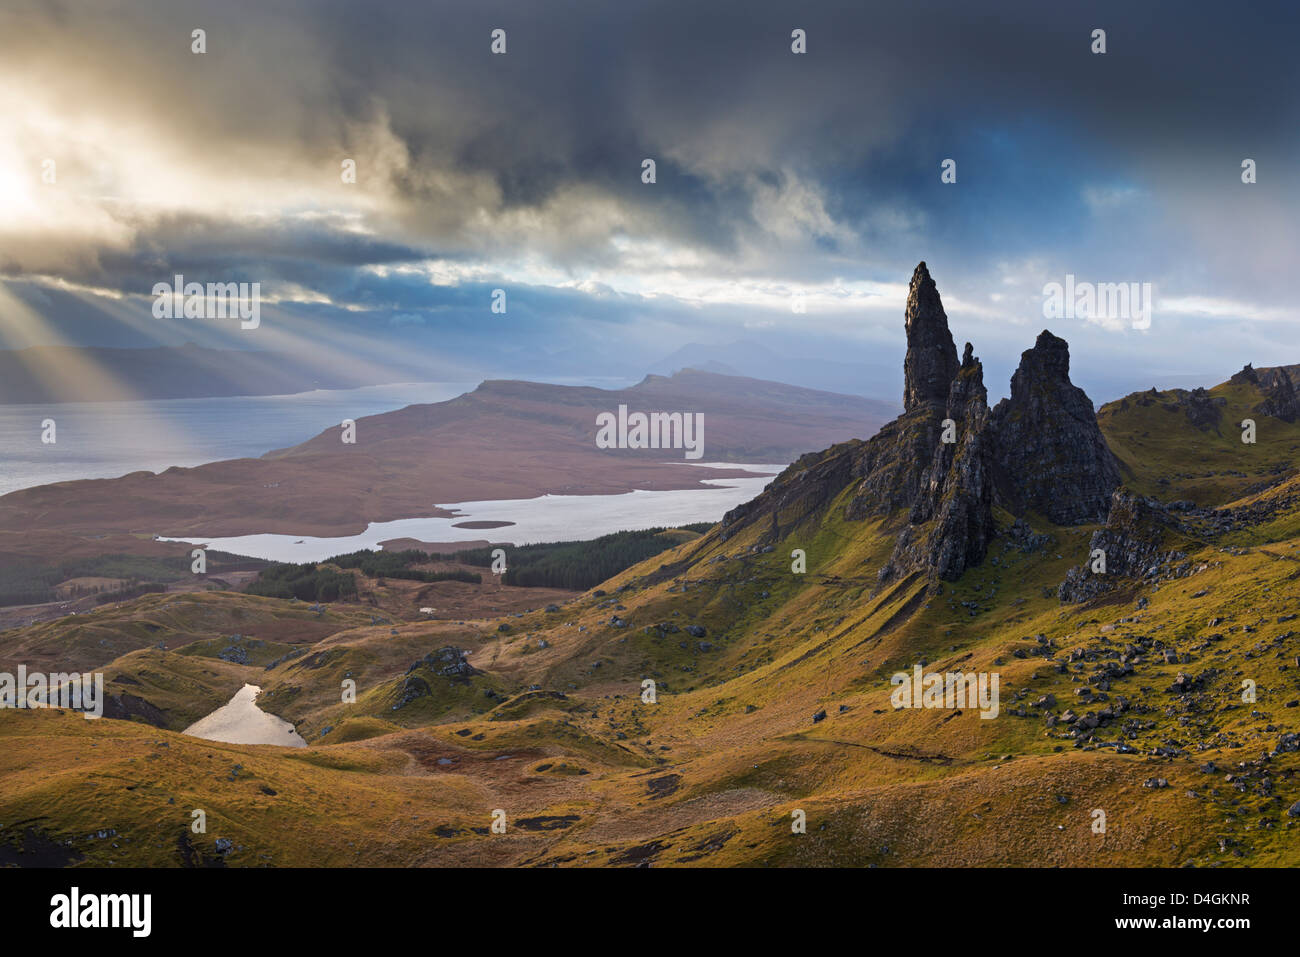 Dramatic landscape at the Old Man of Storr, Isle of Skye, Scotland. Autumn (November) 2012 - Stock Image